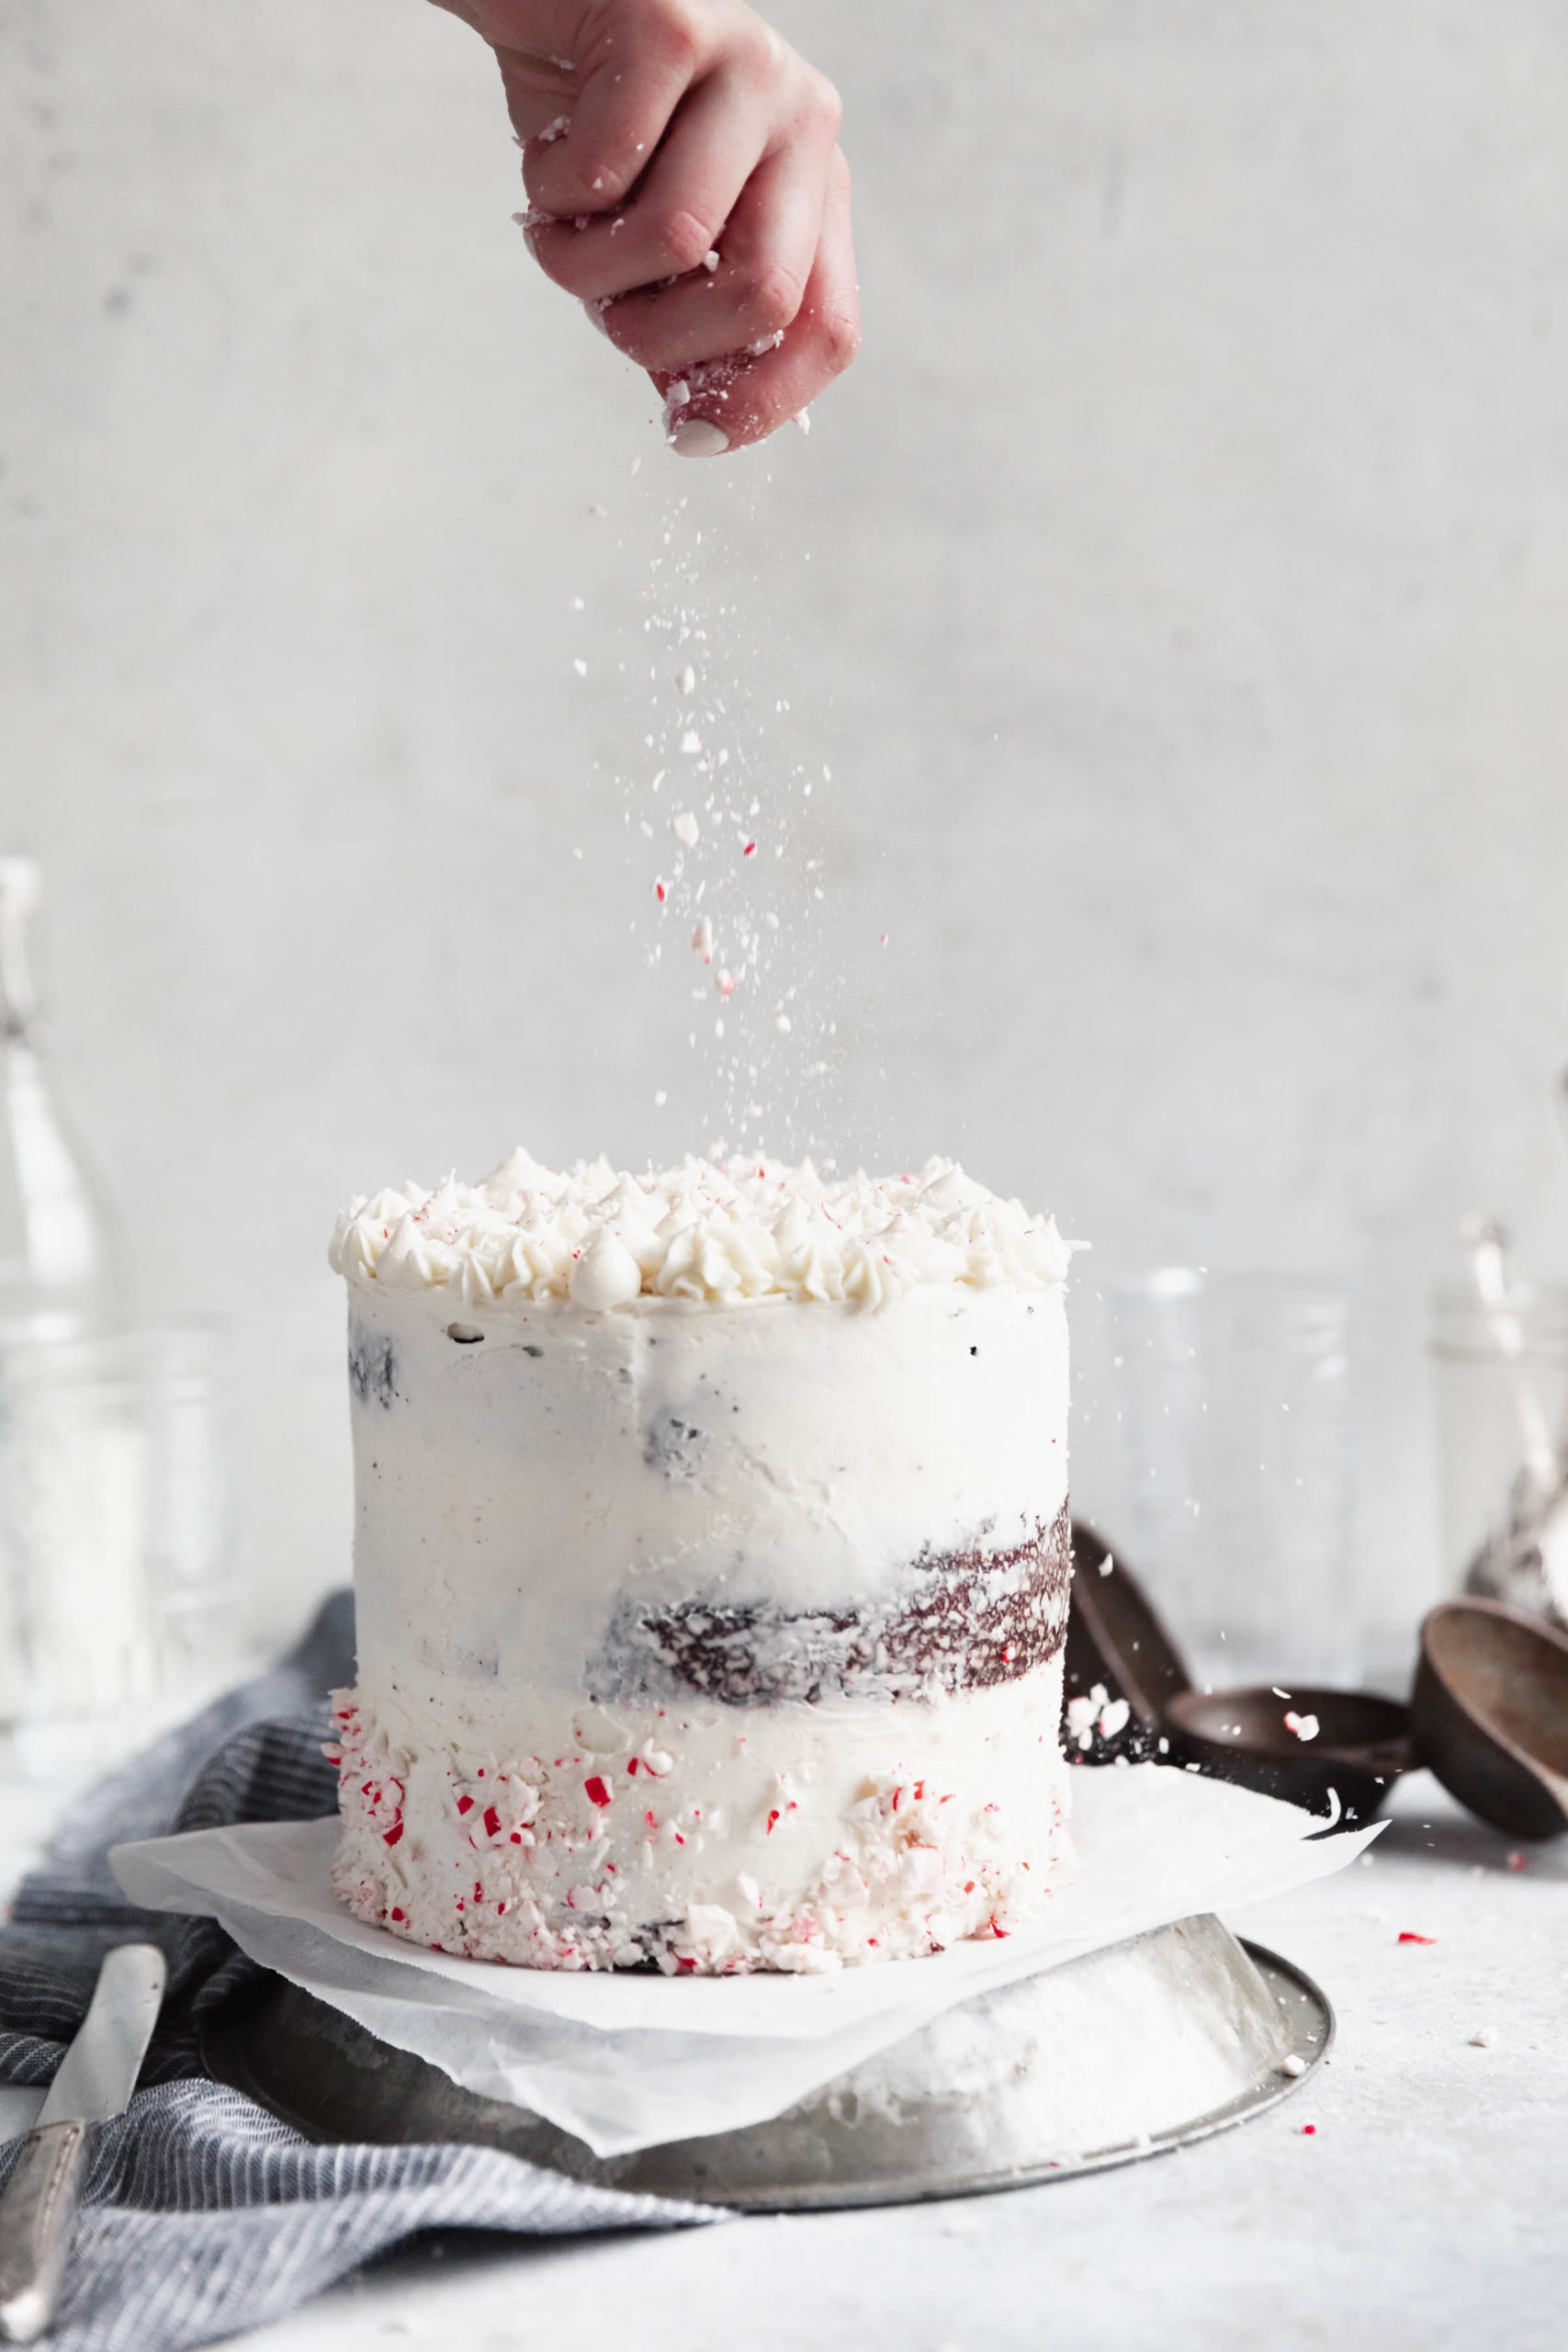 peppermint chocolate cake with sprinkle of peppermint on top